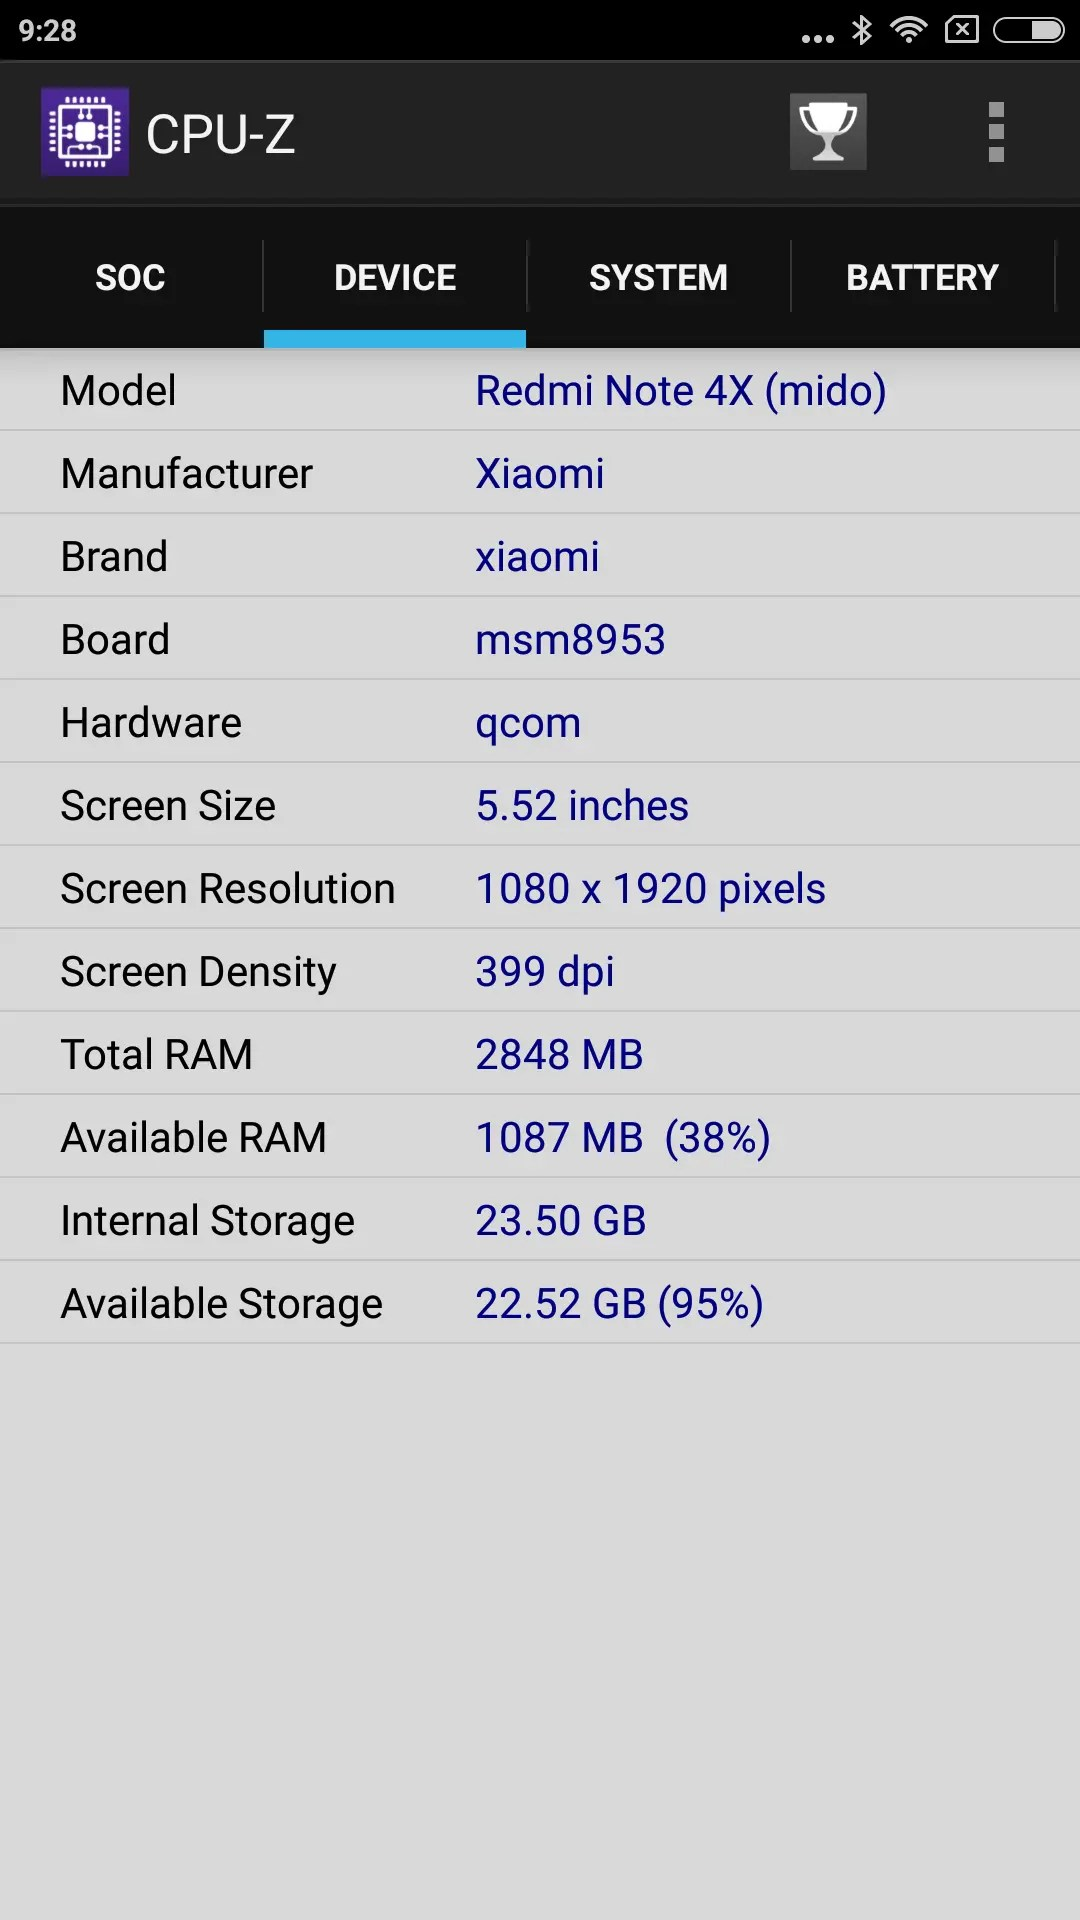 Xiaomi Redmi Note 4X CPU-Z Device